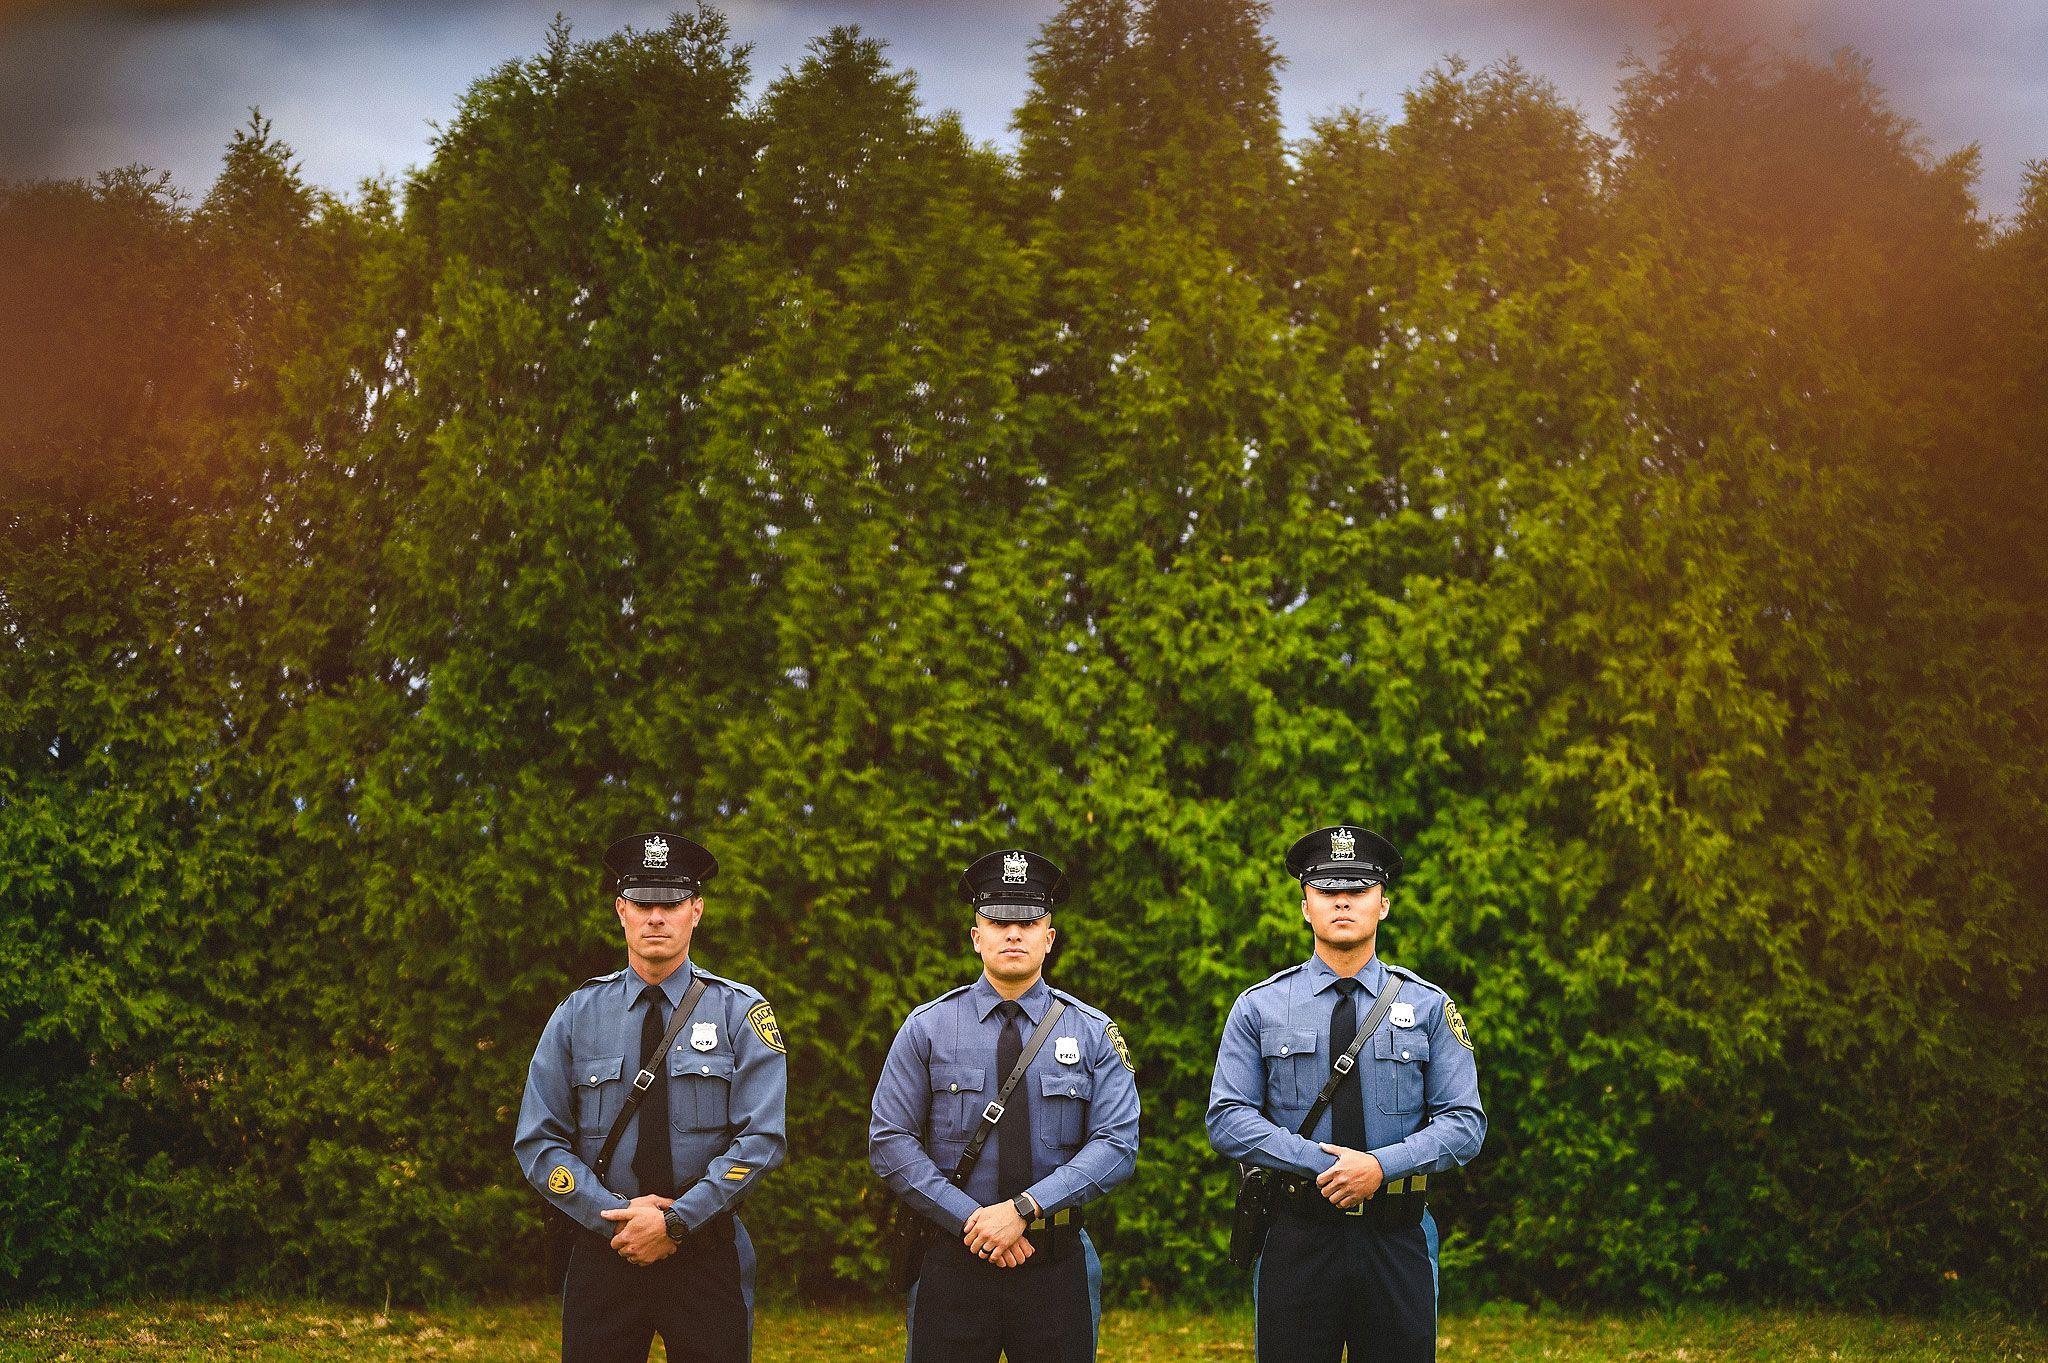 Police officers portrait in front of tree line